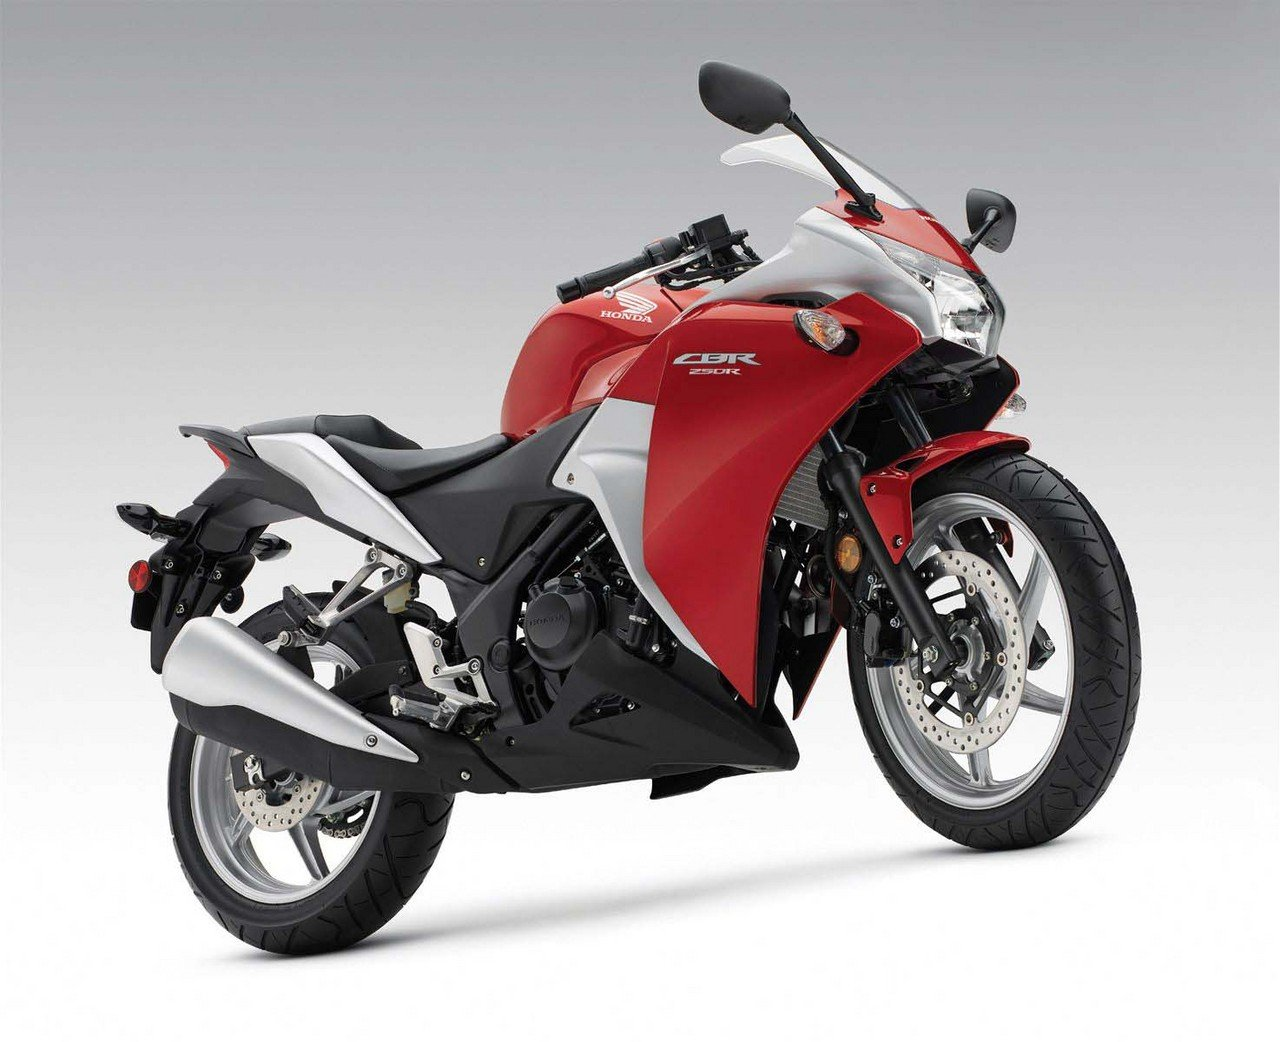 2012 honda cbr 250r picture 457082 motorcycle review. Black Bedroom Furniture Sets. Home Design Ideas